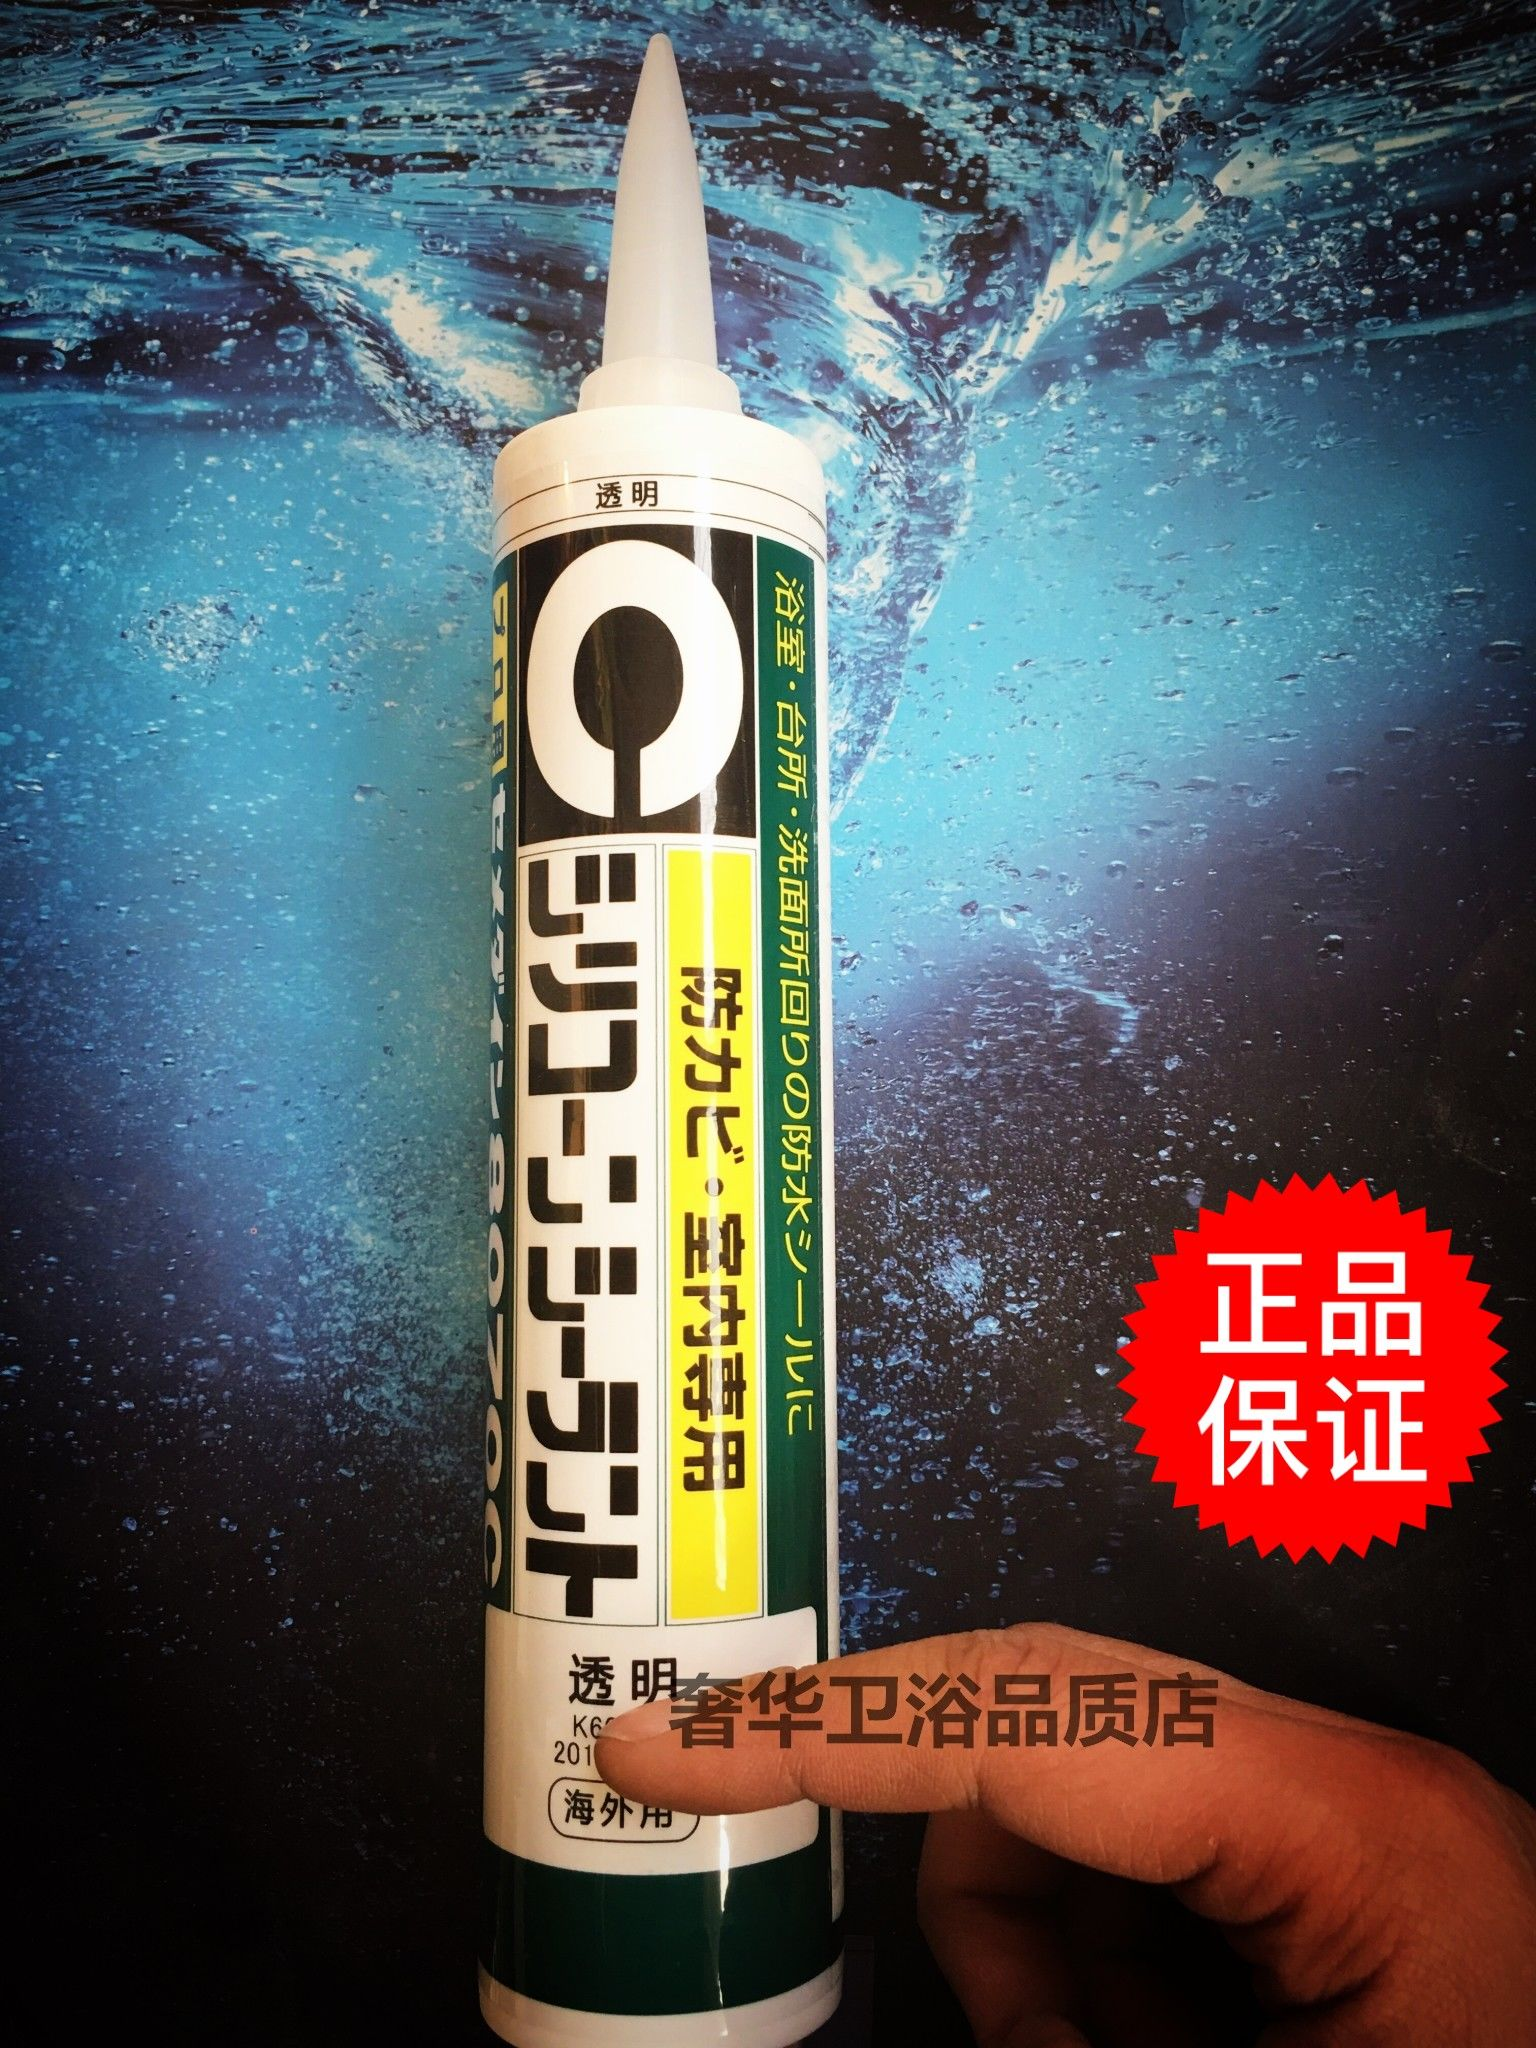 Japan's original imported glass glue Shimin hit hard 8070 silicone seal anti-mold anti-mold waterproof TOTO toilet dedicated